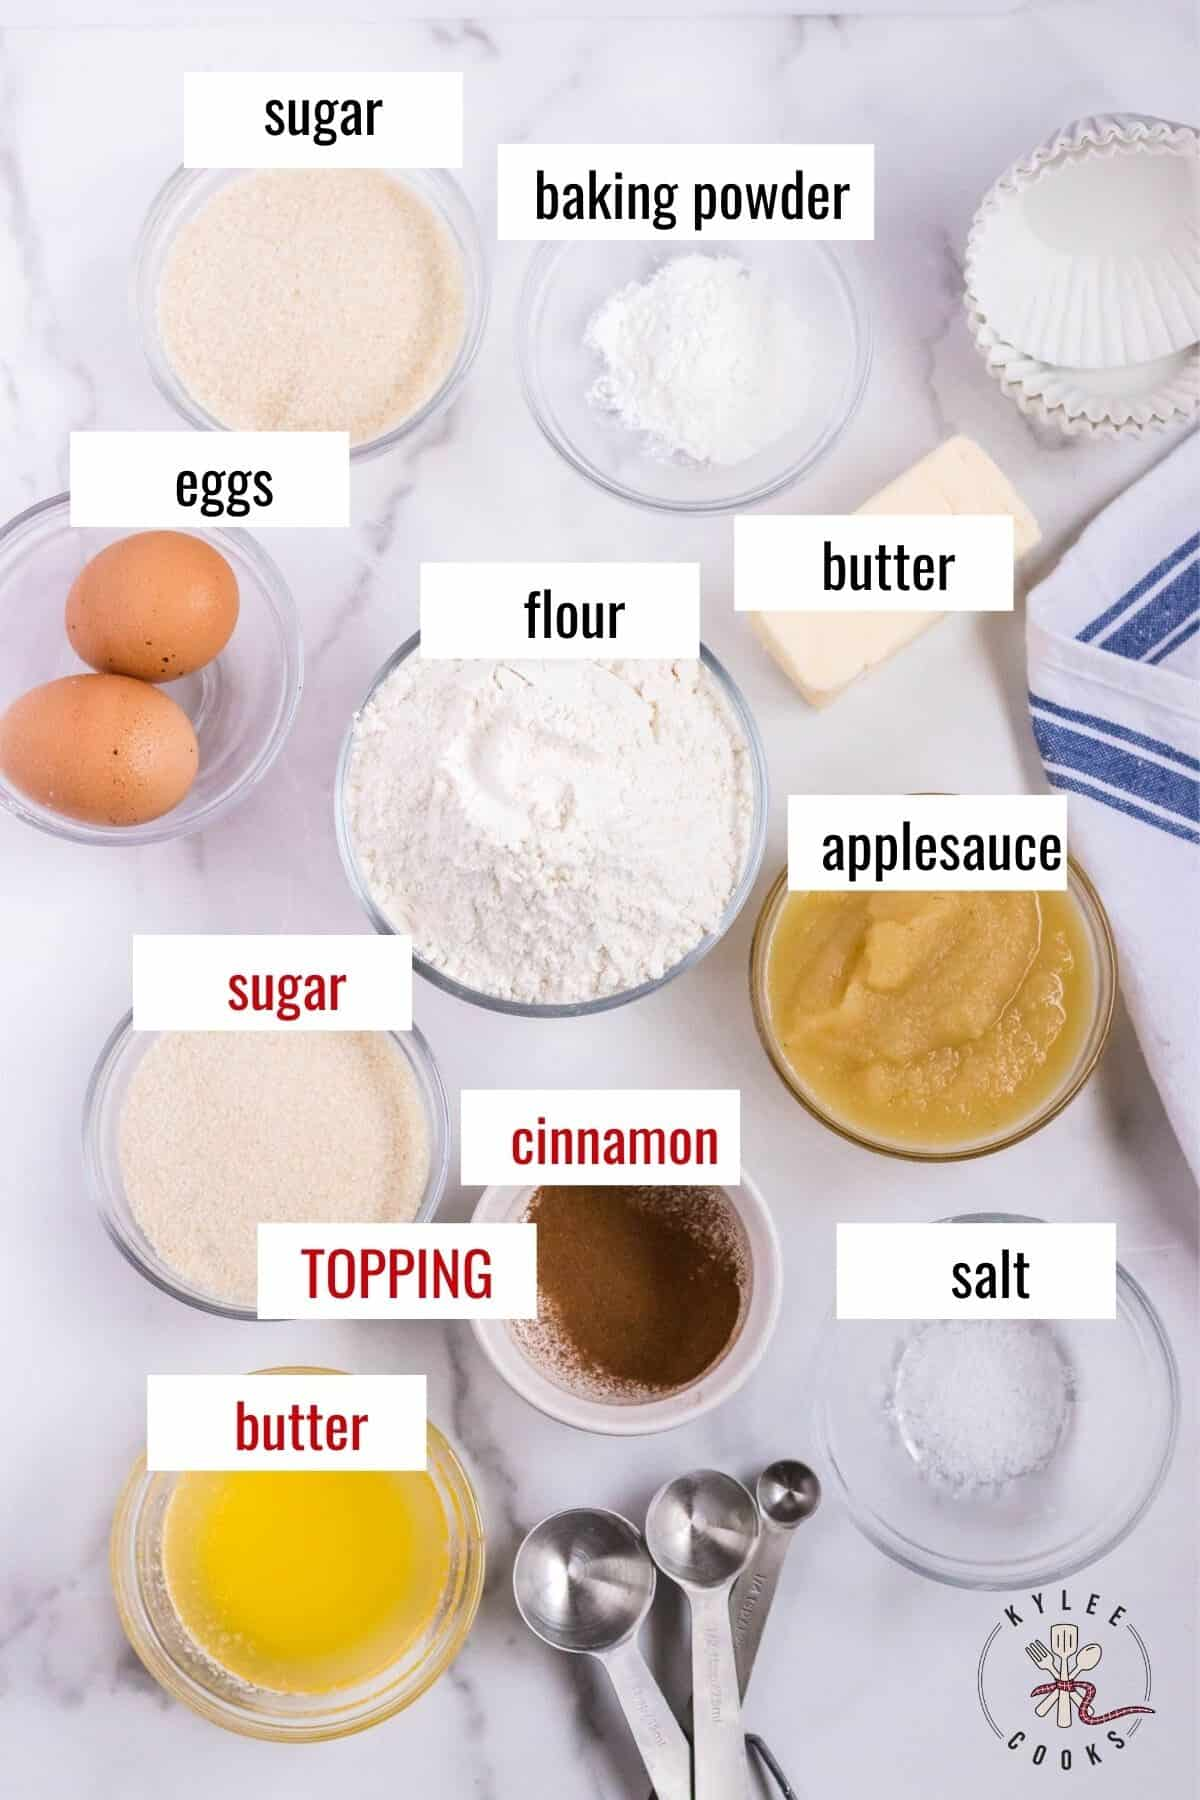 ingredients to make applesauce muffins laid out and labeled